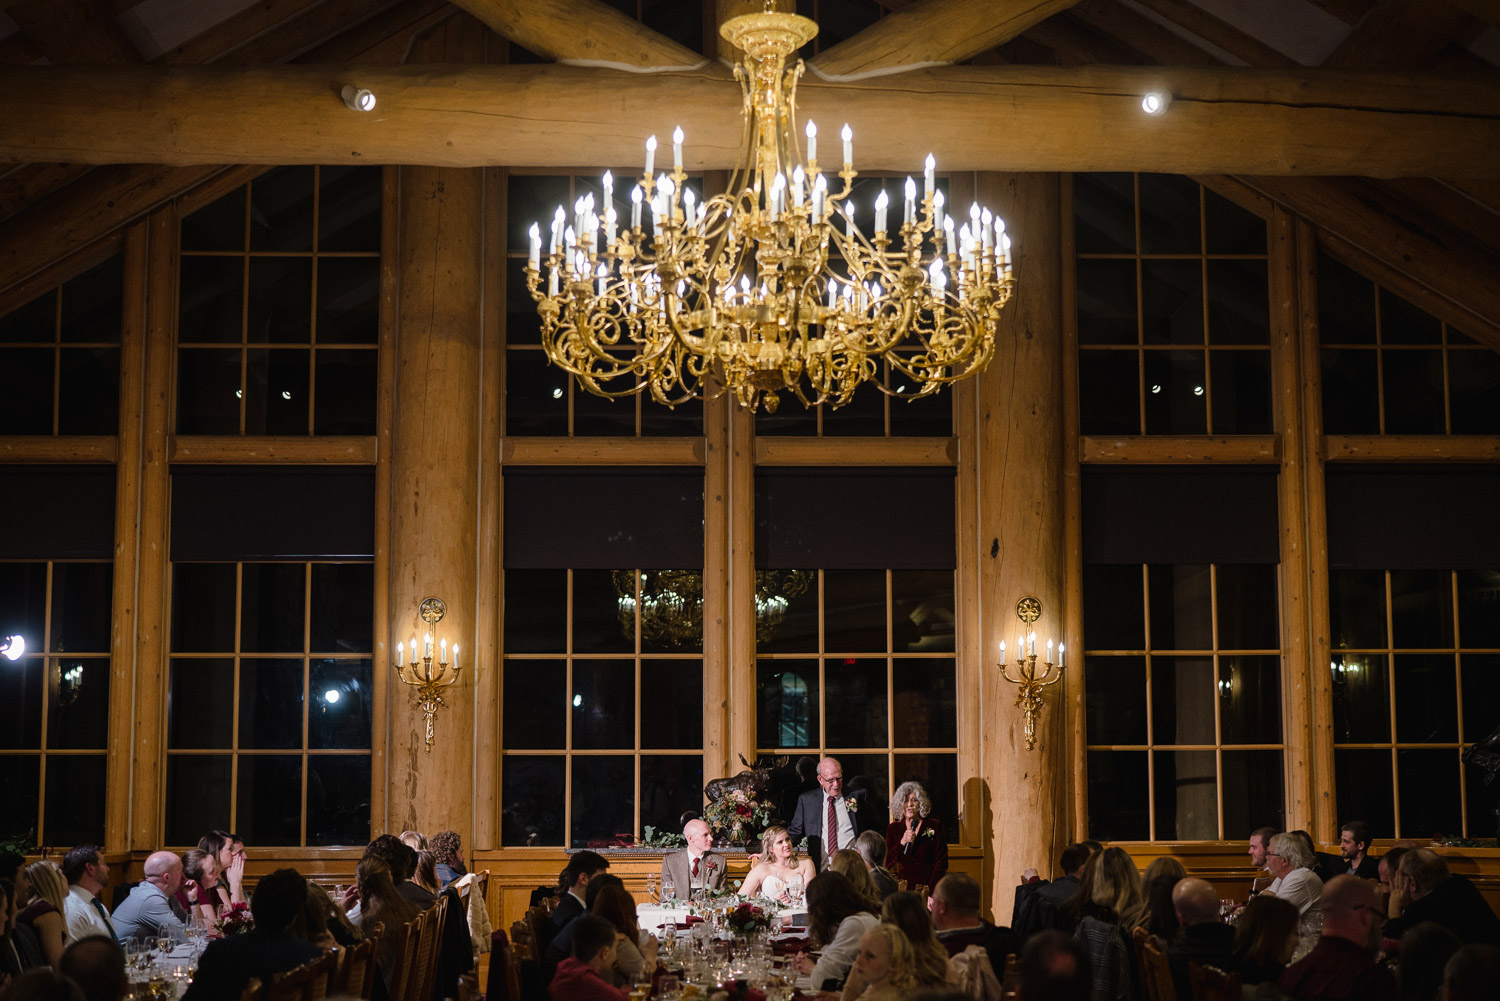 snowbasin wedding dinner and toasts under chandelier in lodge